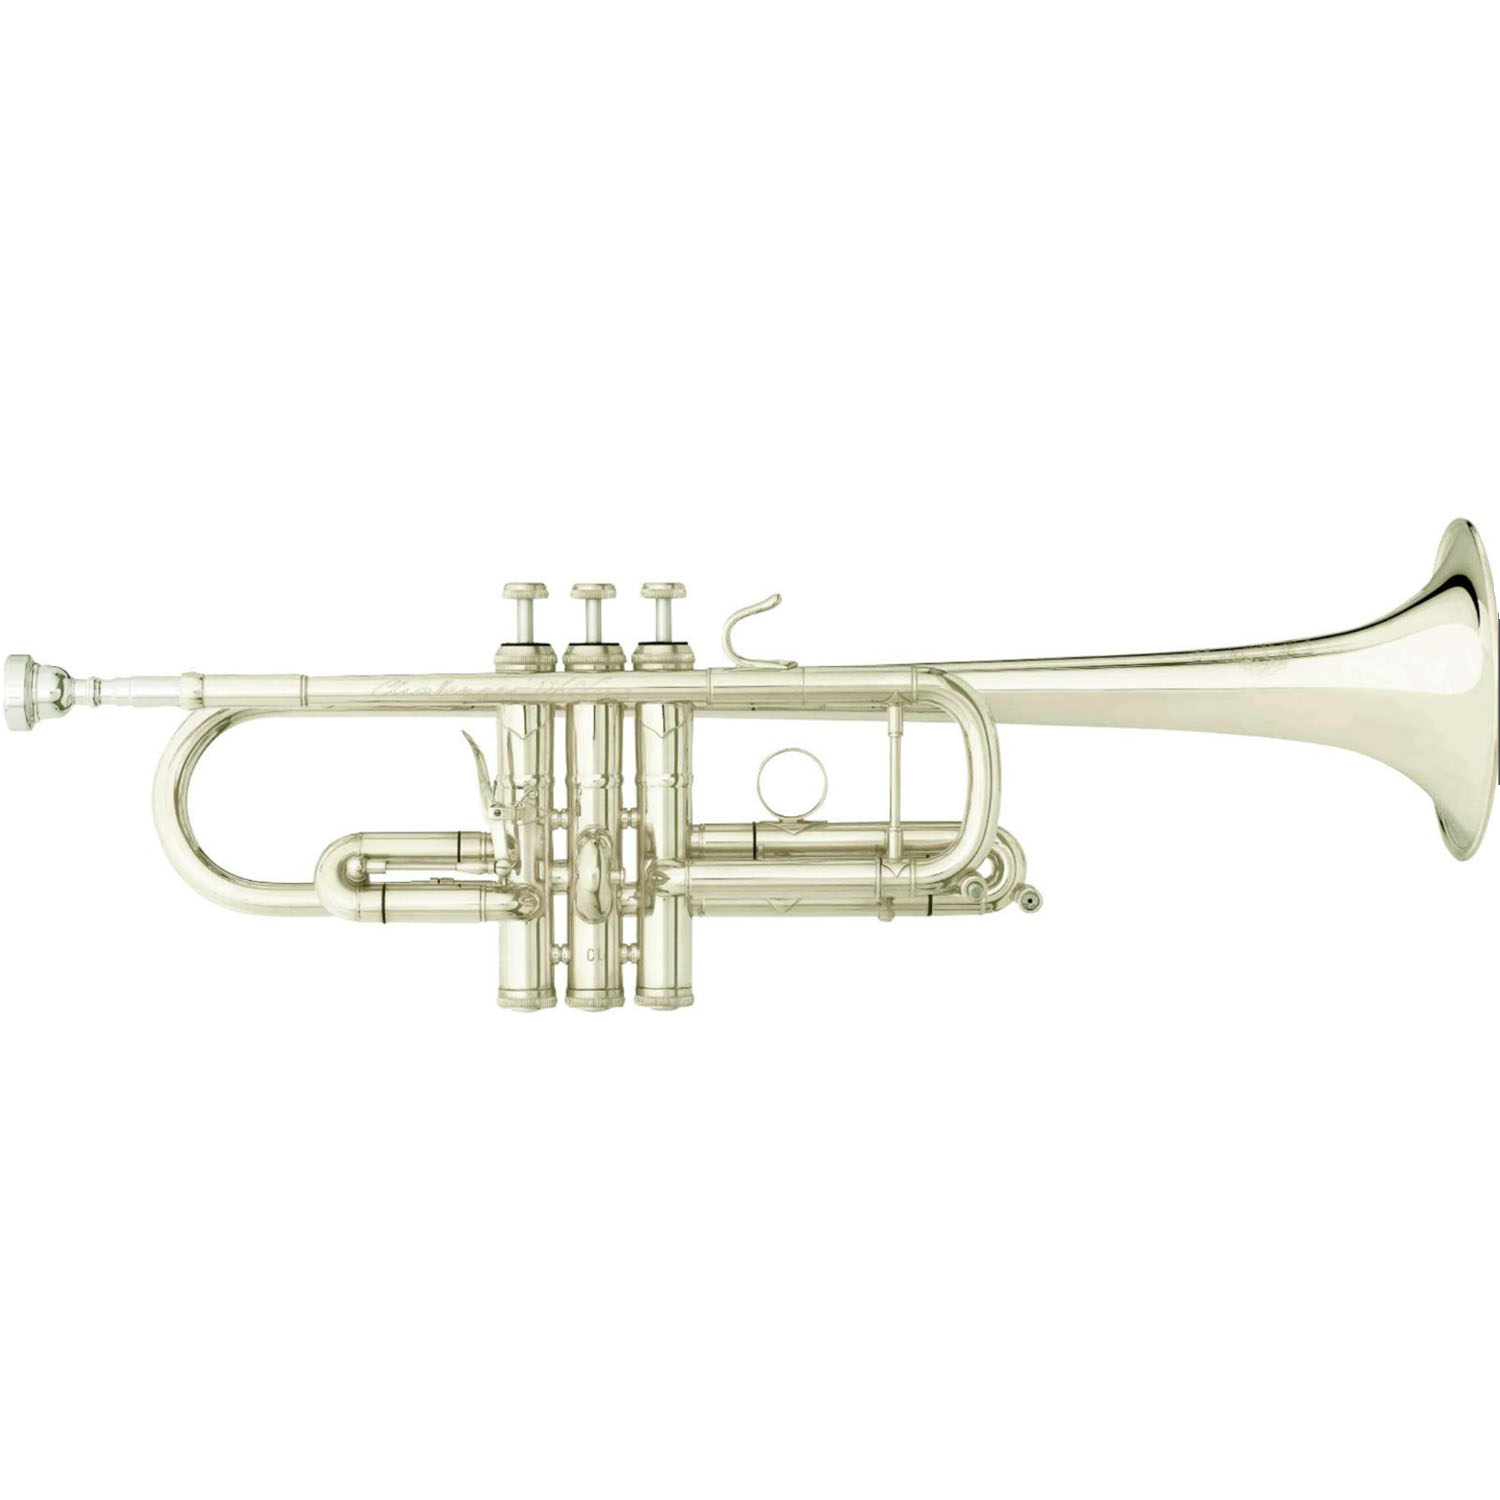 "B&S ""X-Series"" Professional C Trumpet - DCX Model - 2 Bells Included!"